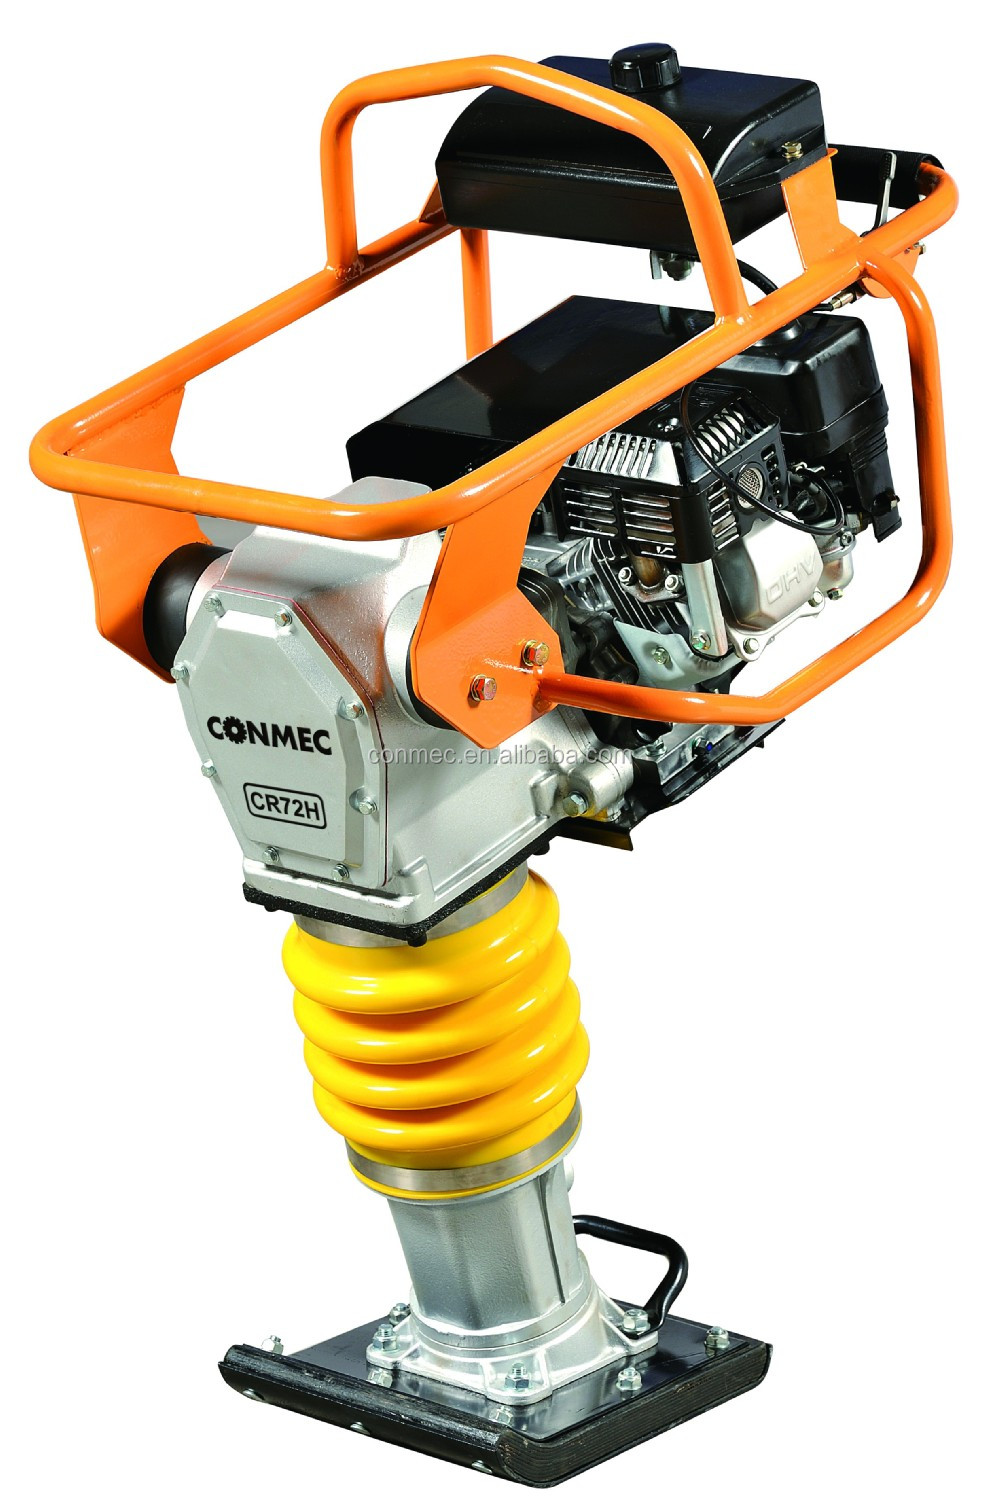 5.5HP Honda Engine Vibratory Tamping Rammer with 5-8 Jumping Stroke